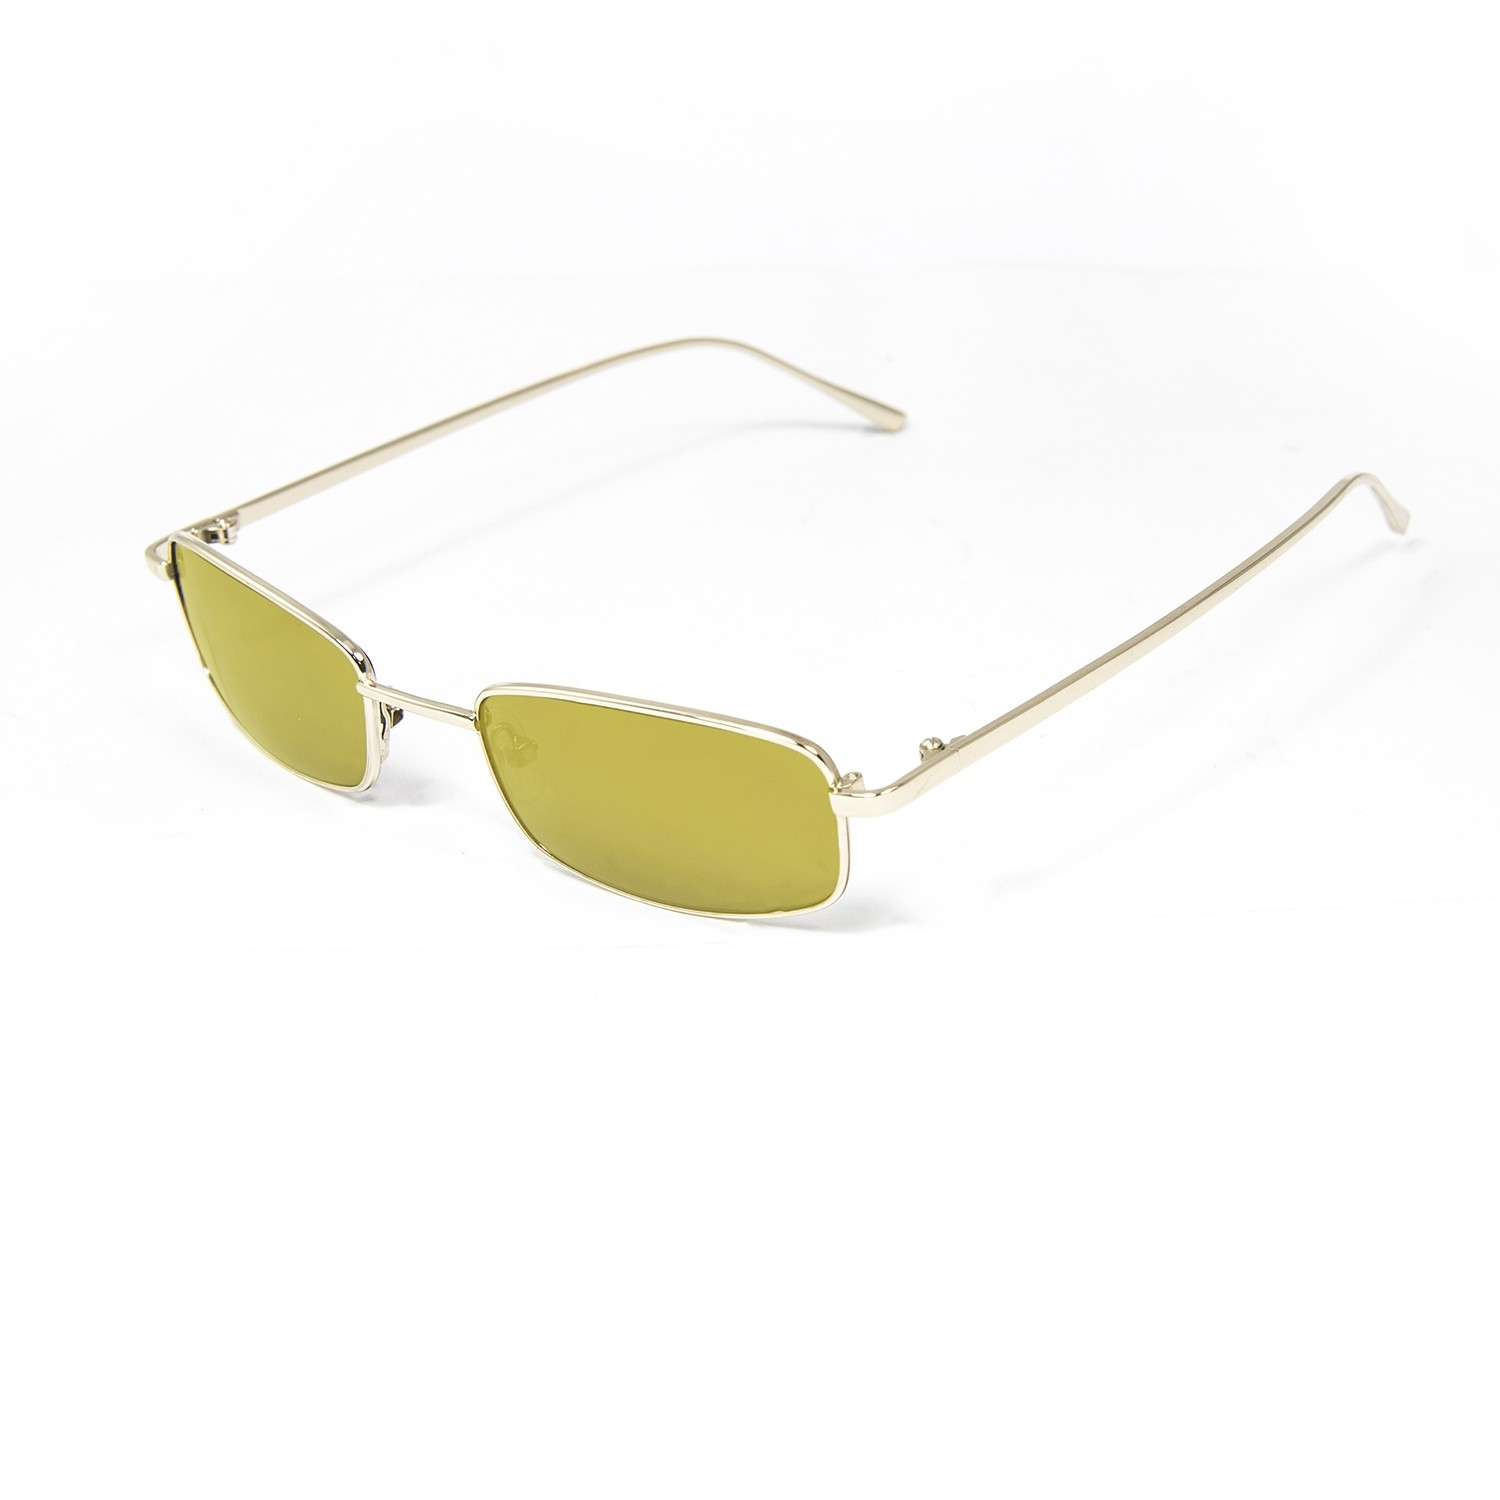 DYLAN gold frame with gold lens